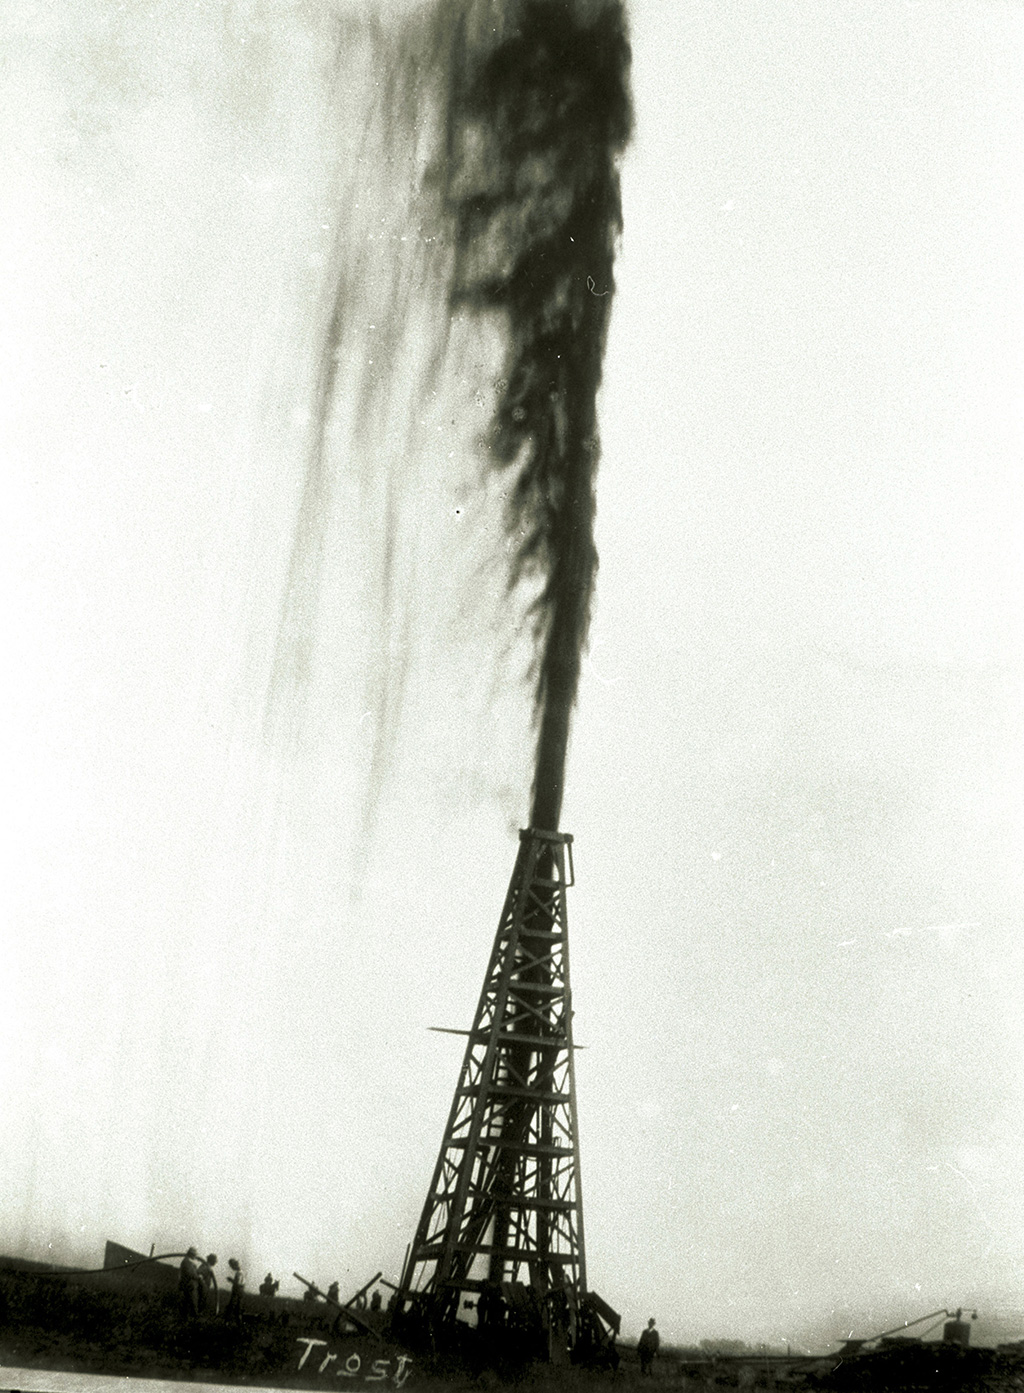 The so-called Lucas Gusher in Spindletop in 1901, the beginning if the first major oil boom in the USA © Tyrell Historical Library (Beaumont, Texas) the Gilbert Papers, MS 159]